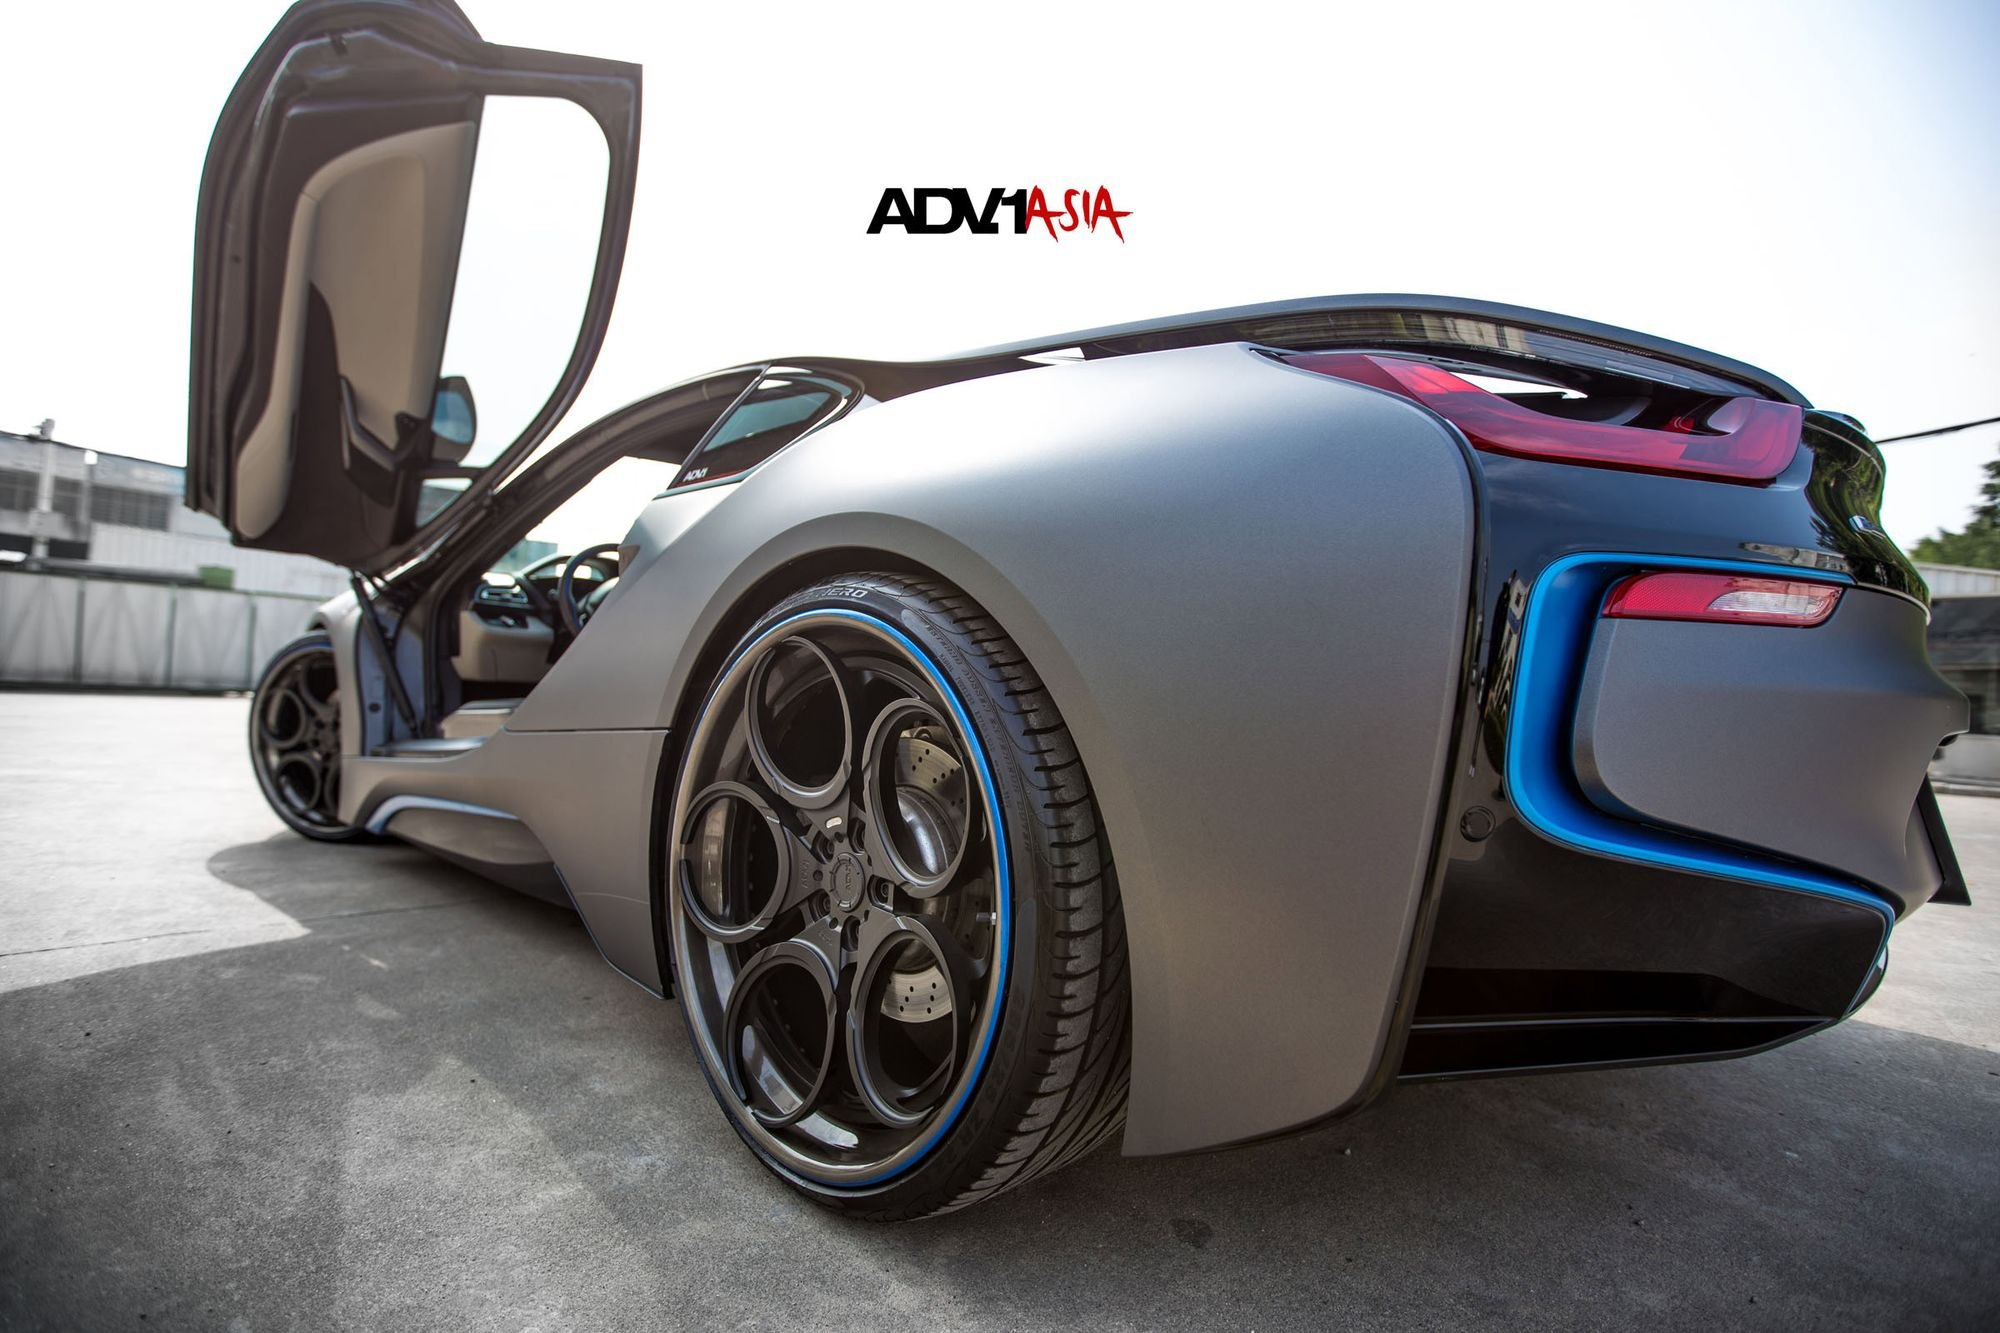 Vertical Doors To The Future Hybrid Bmw I8 With Custom Wheels